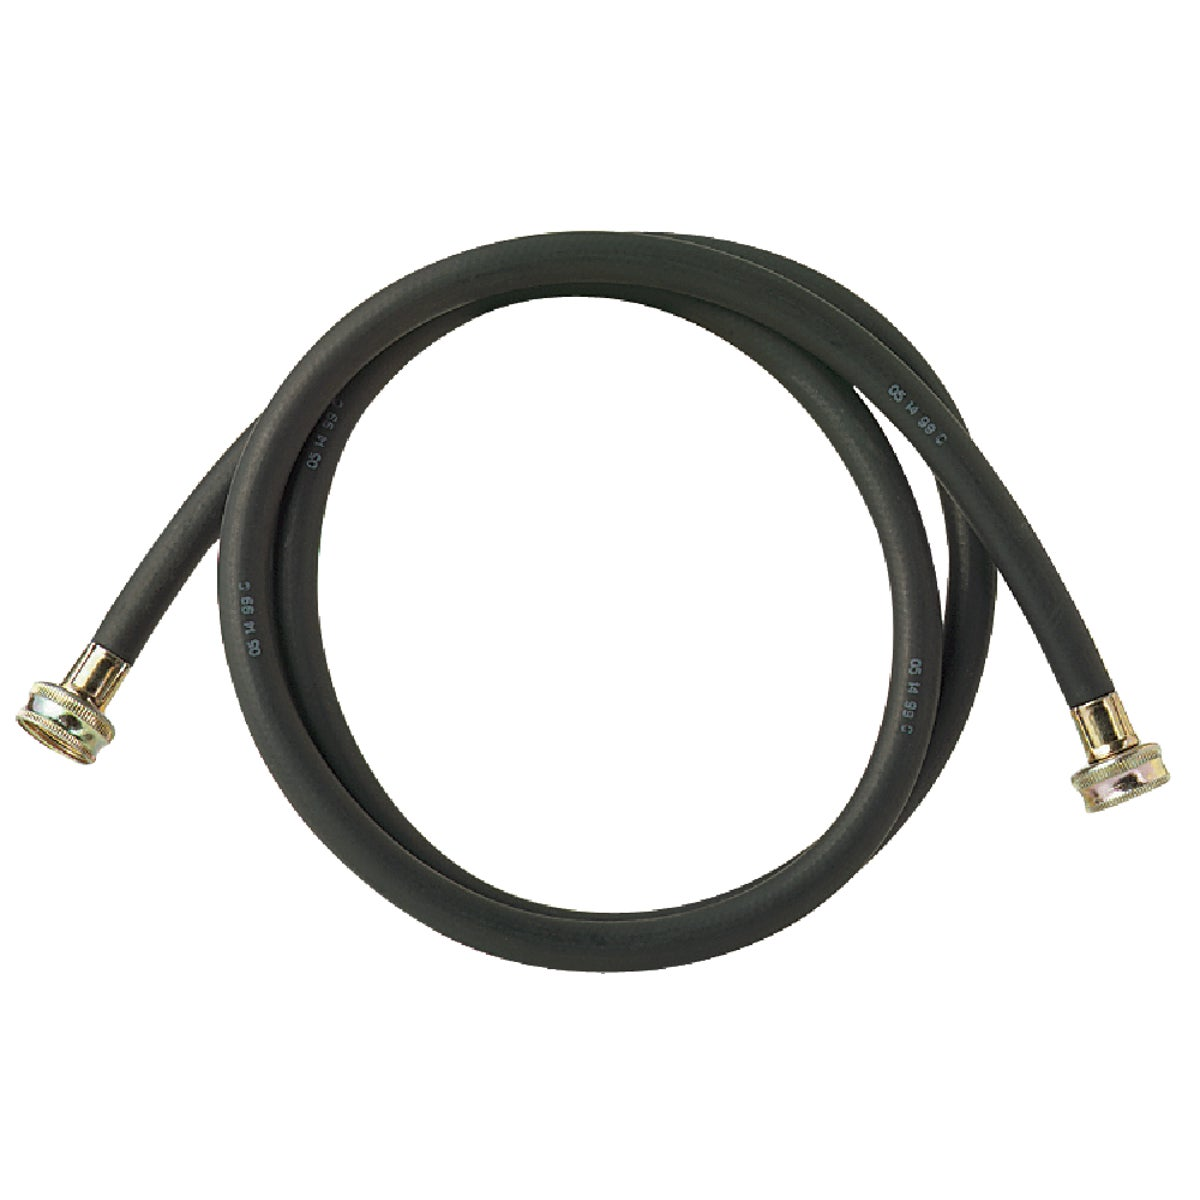 6' PRESSURE HOSE - 413029 by Wm H Harvey Co